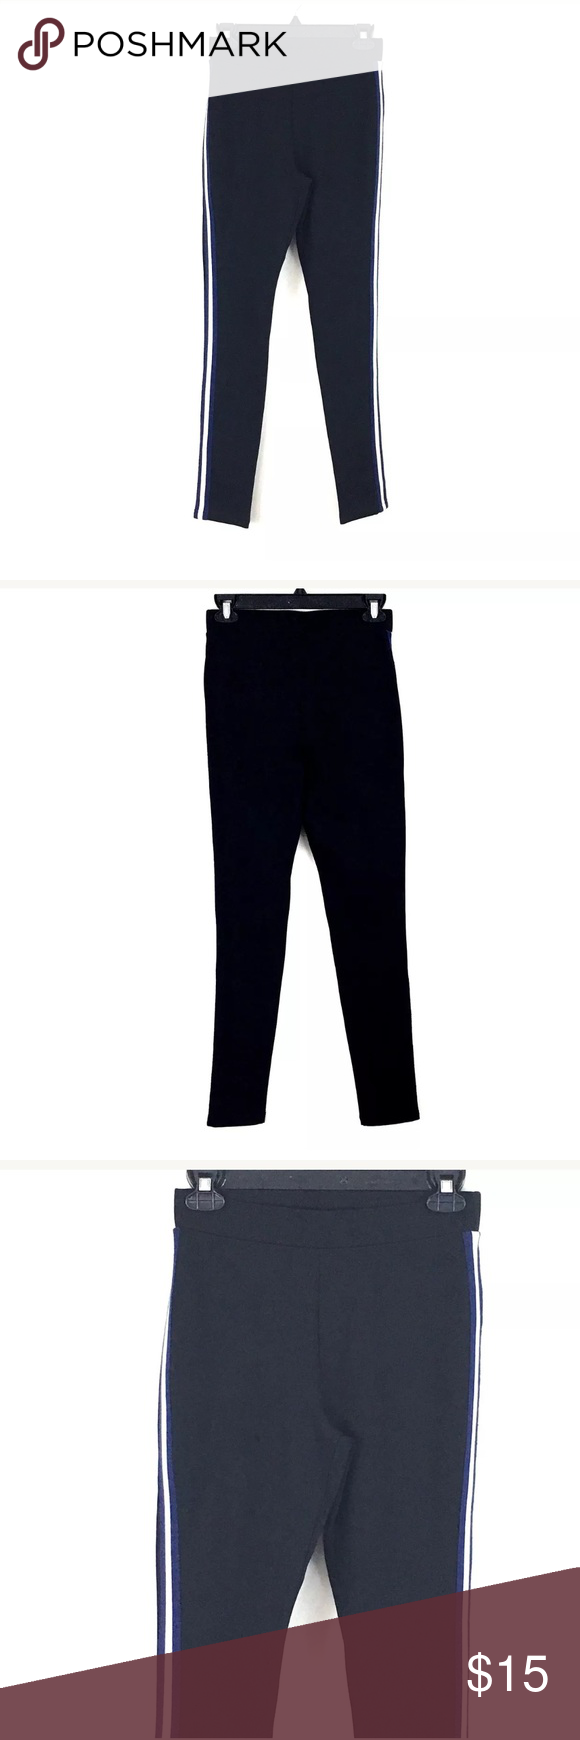 5e8cf8e1a34185 Romeo and Juliet Couture leggings Romeo and Juliet Couture Womens Size  Small black leggings with blue and white panels down the outer side of each  leg.